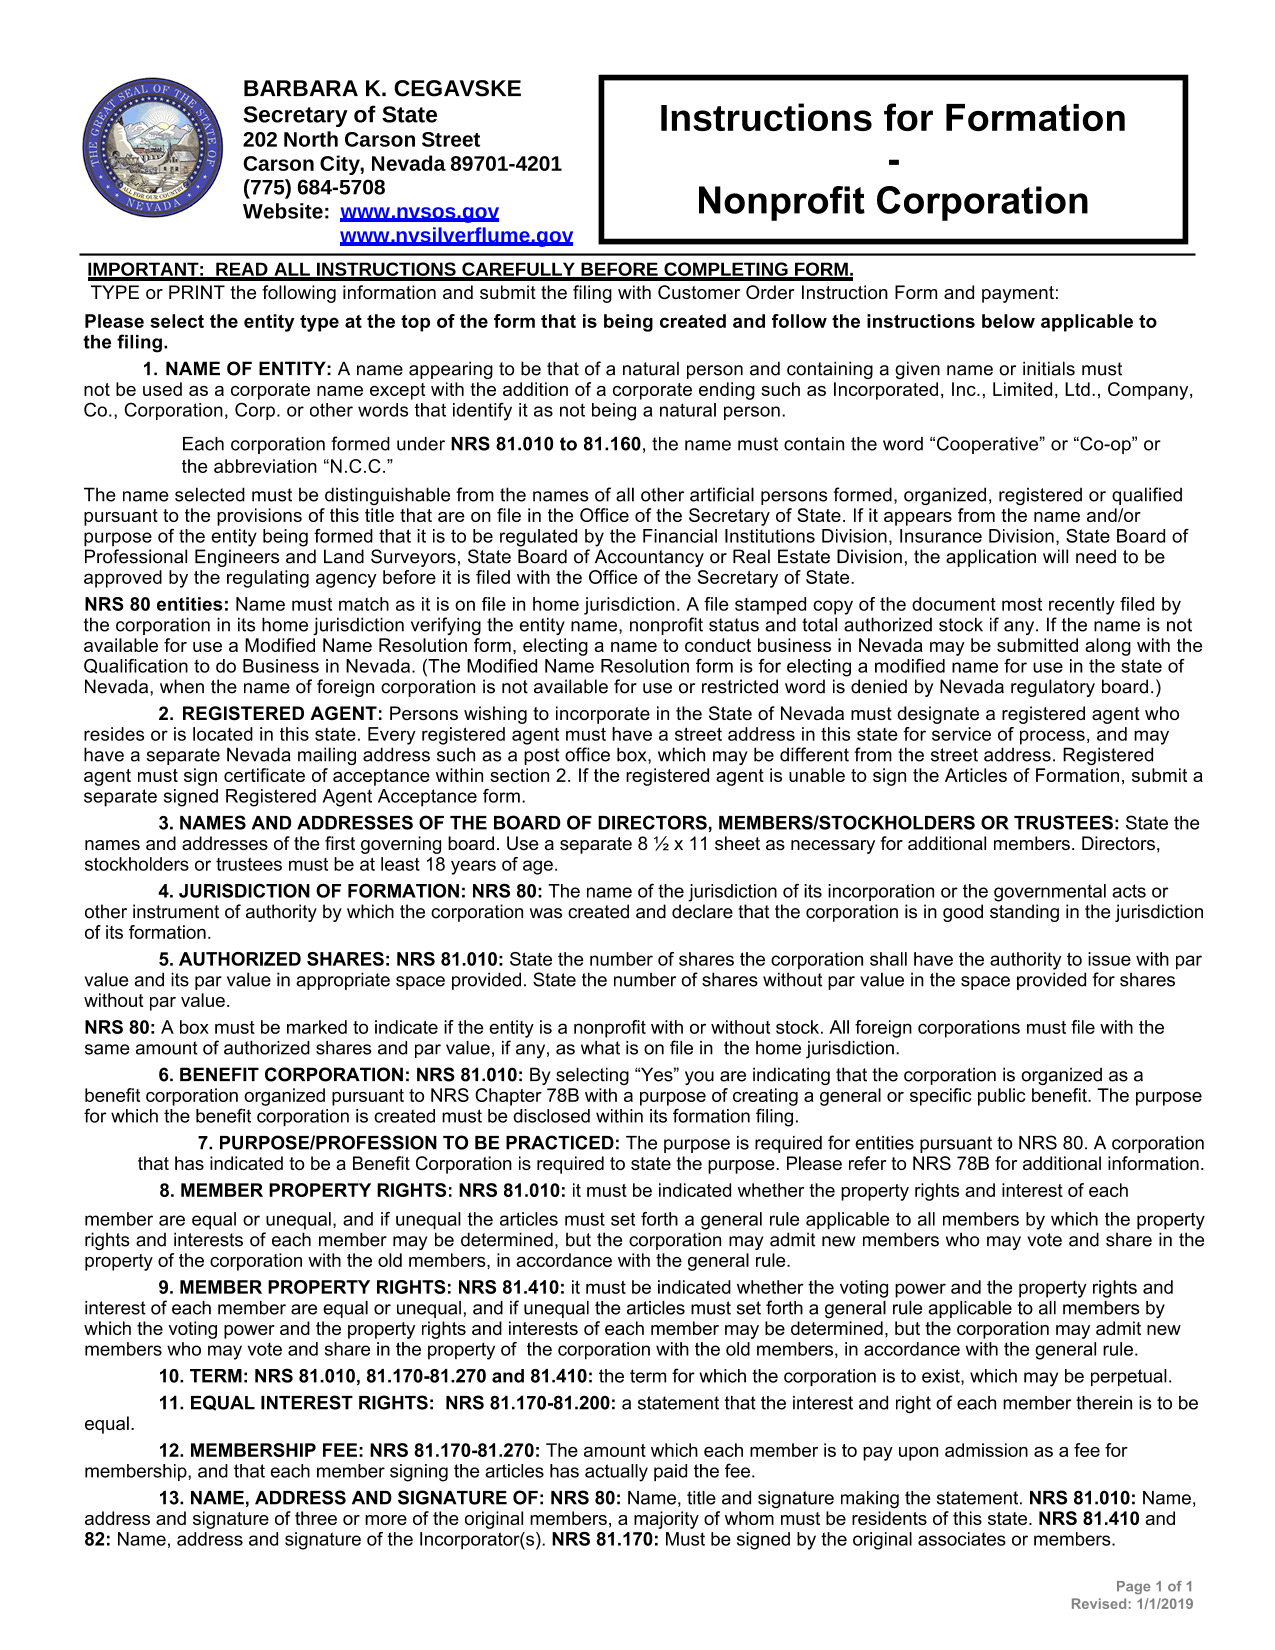 Nevada Nonprofit Articles of Incorporation